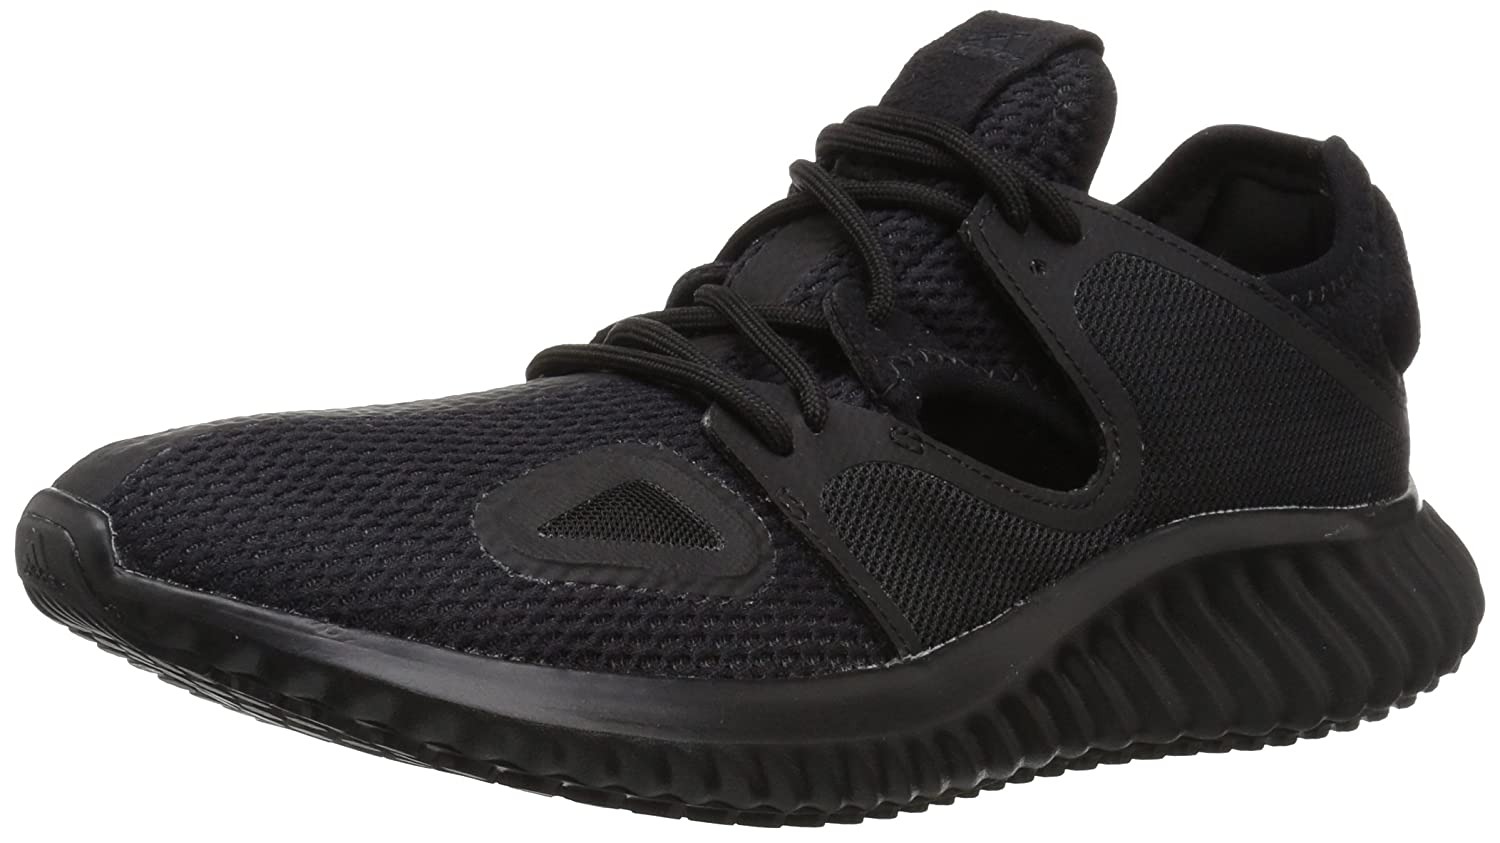 adidas Women's Lux B071F9349N Clima w Running Shoe B071F9349N Lux 9.5 B(M) US|Core Black/Carbon/Core Black 4518e5